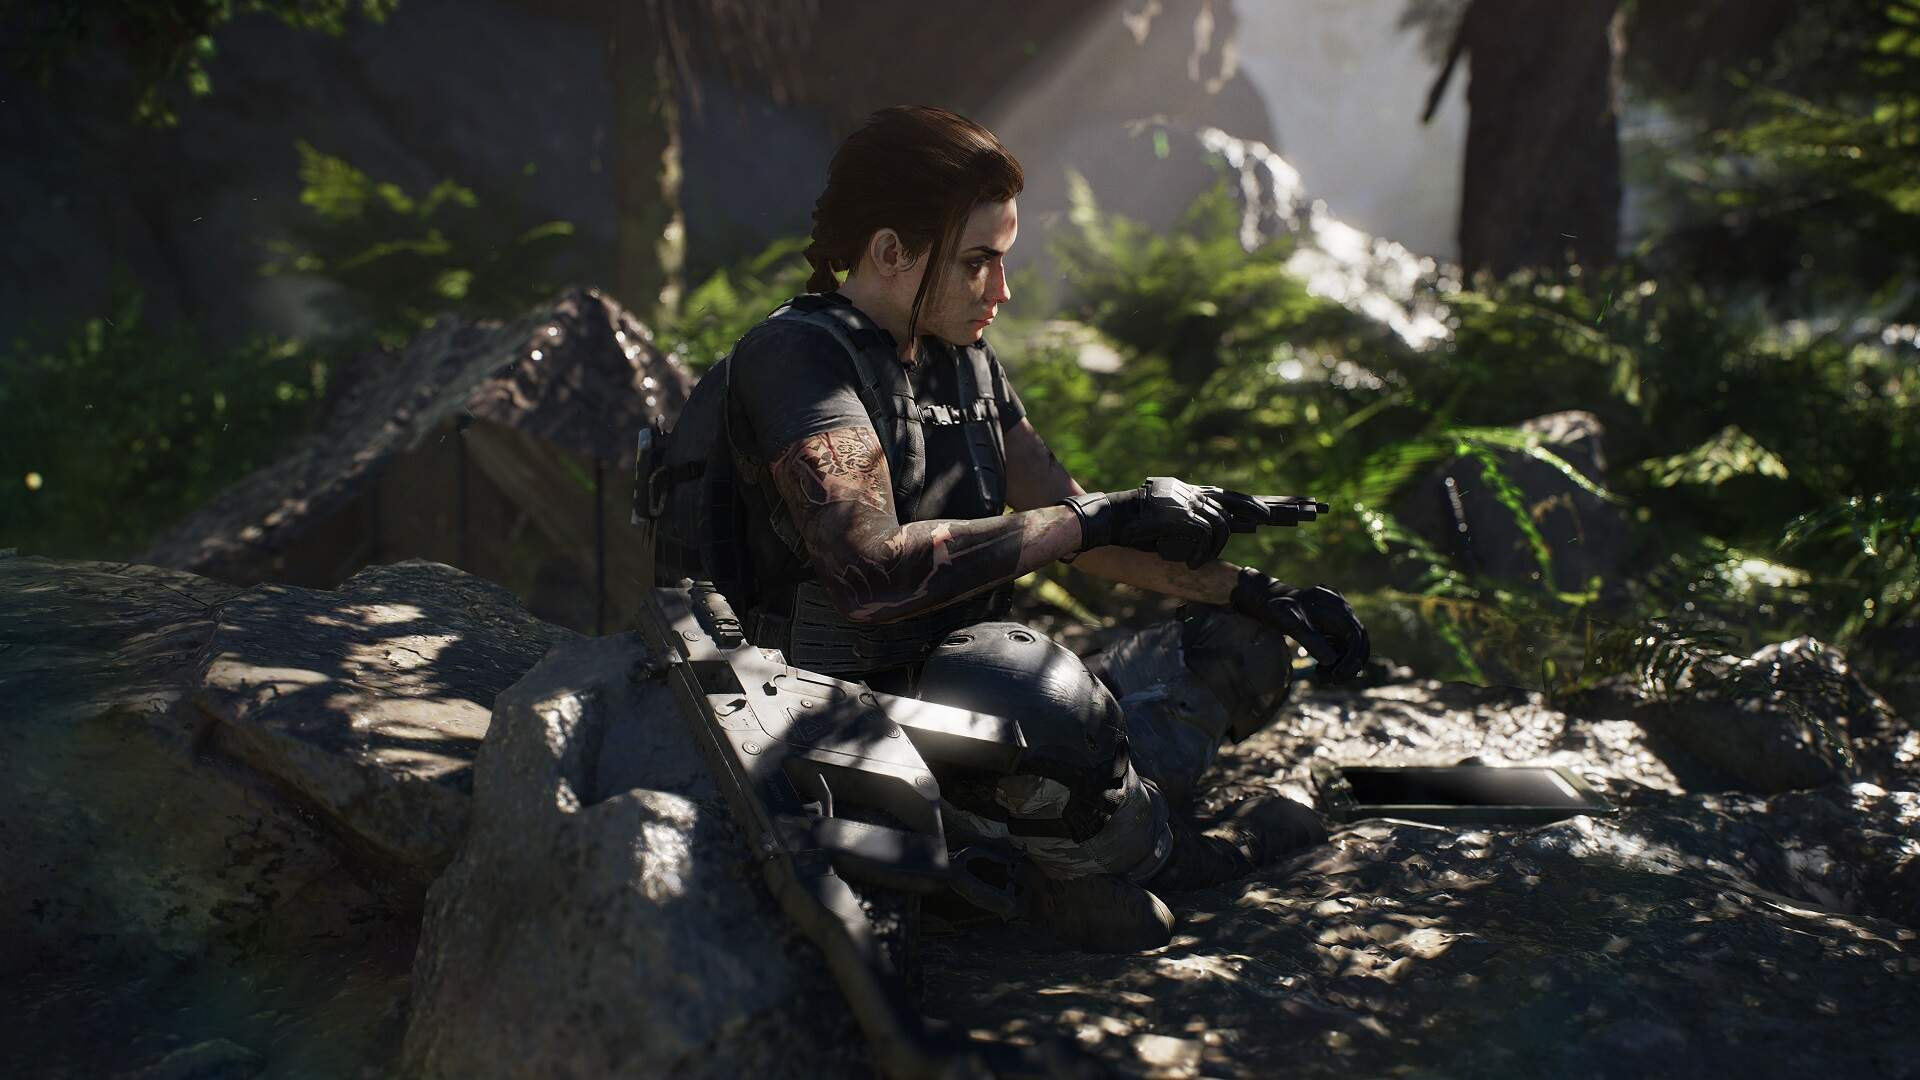 How to Change Your Appearance in Ghost Recon Breakpoint